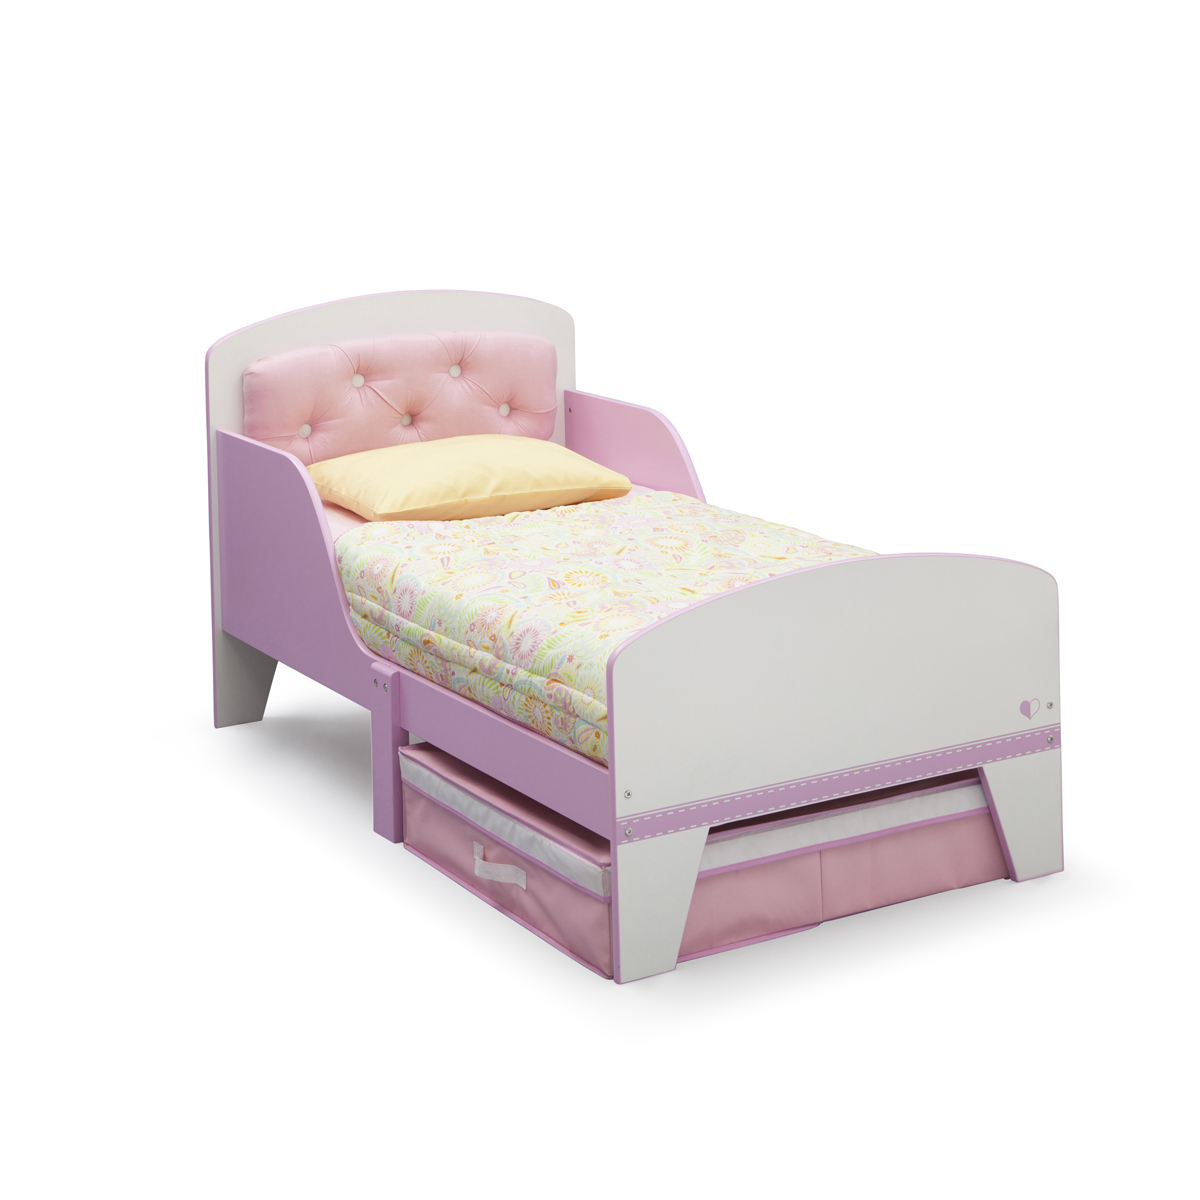 Delta Children Jack Jill Toddler Bed With Upholstered Headboard In Pink White Free Shipping